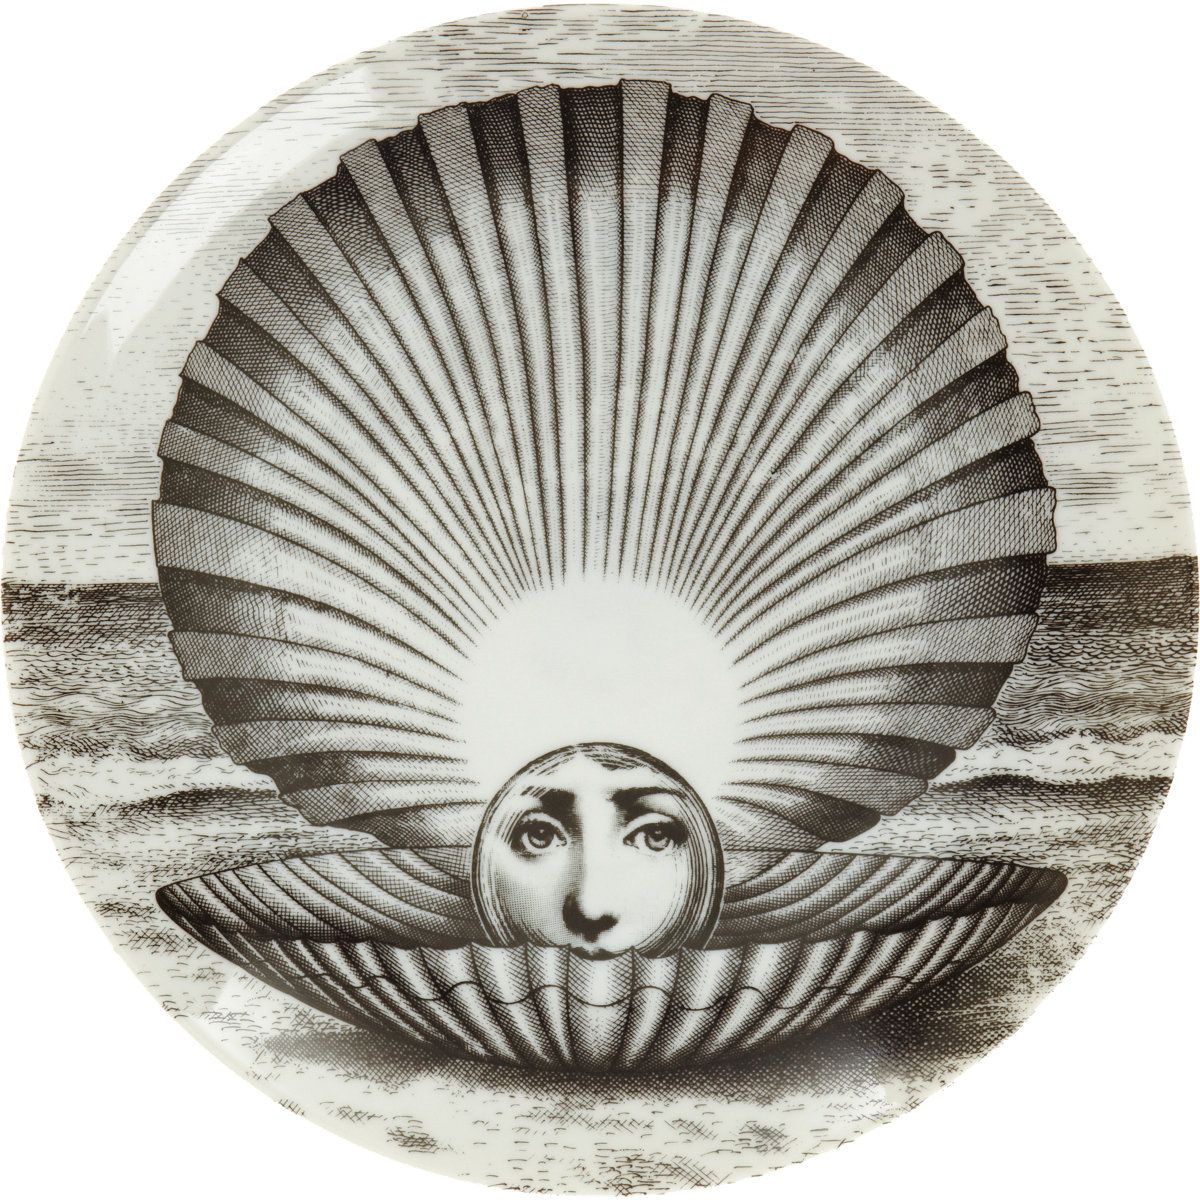 Decorative Face Plates Captivating Plate 274  Things  Pinterest  Piero Fornasetti Illustrations Review